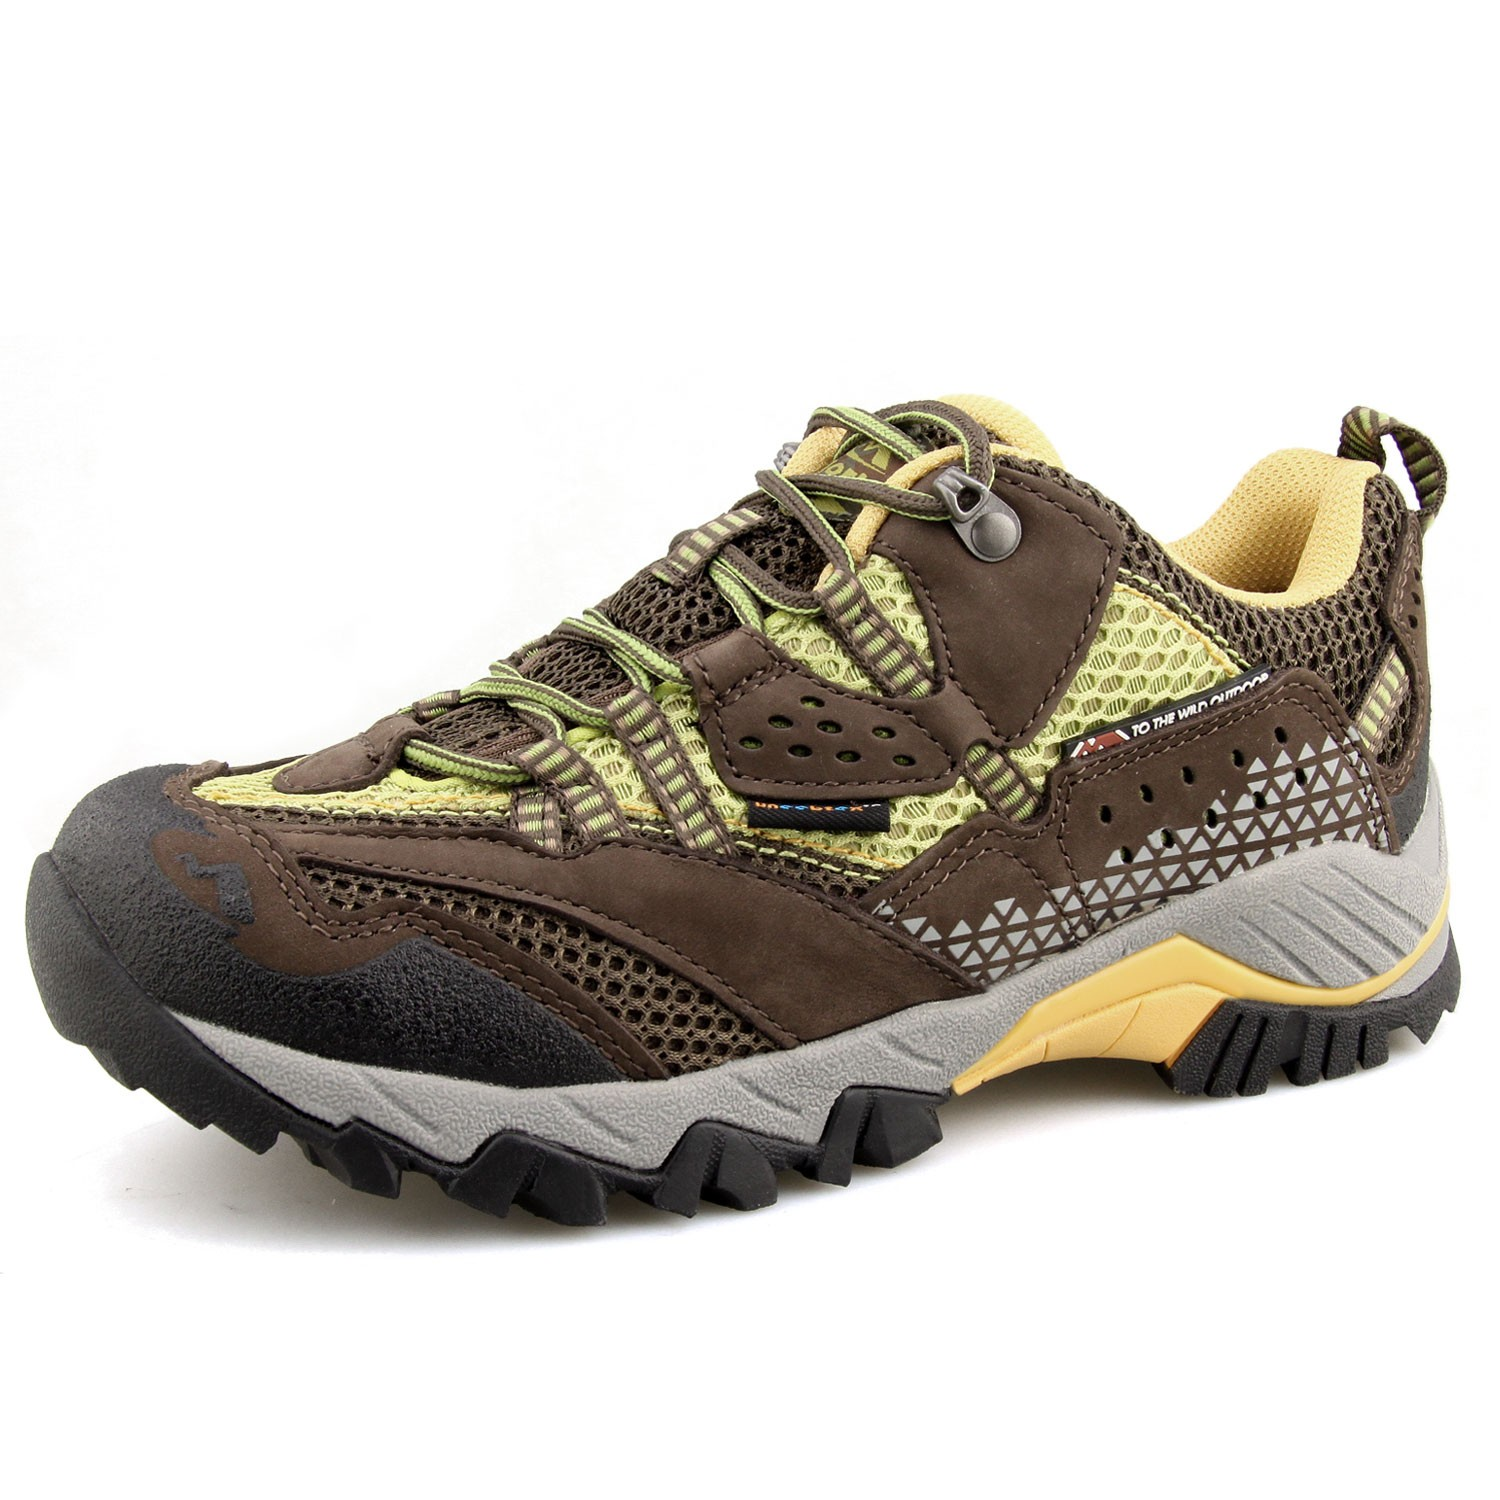 Classic Hiking Boots Cool Hiking Shoes Manufacturers, Classic Hiking Boots Cool Hiking Shoes Factory, Supply Classic Hiking Boots Cool Hiking Shoes